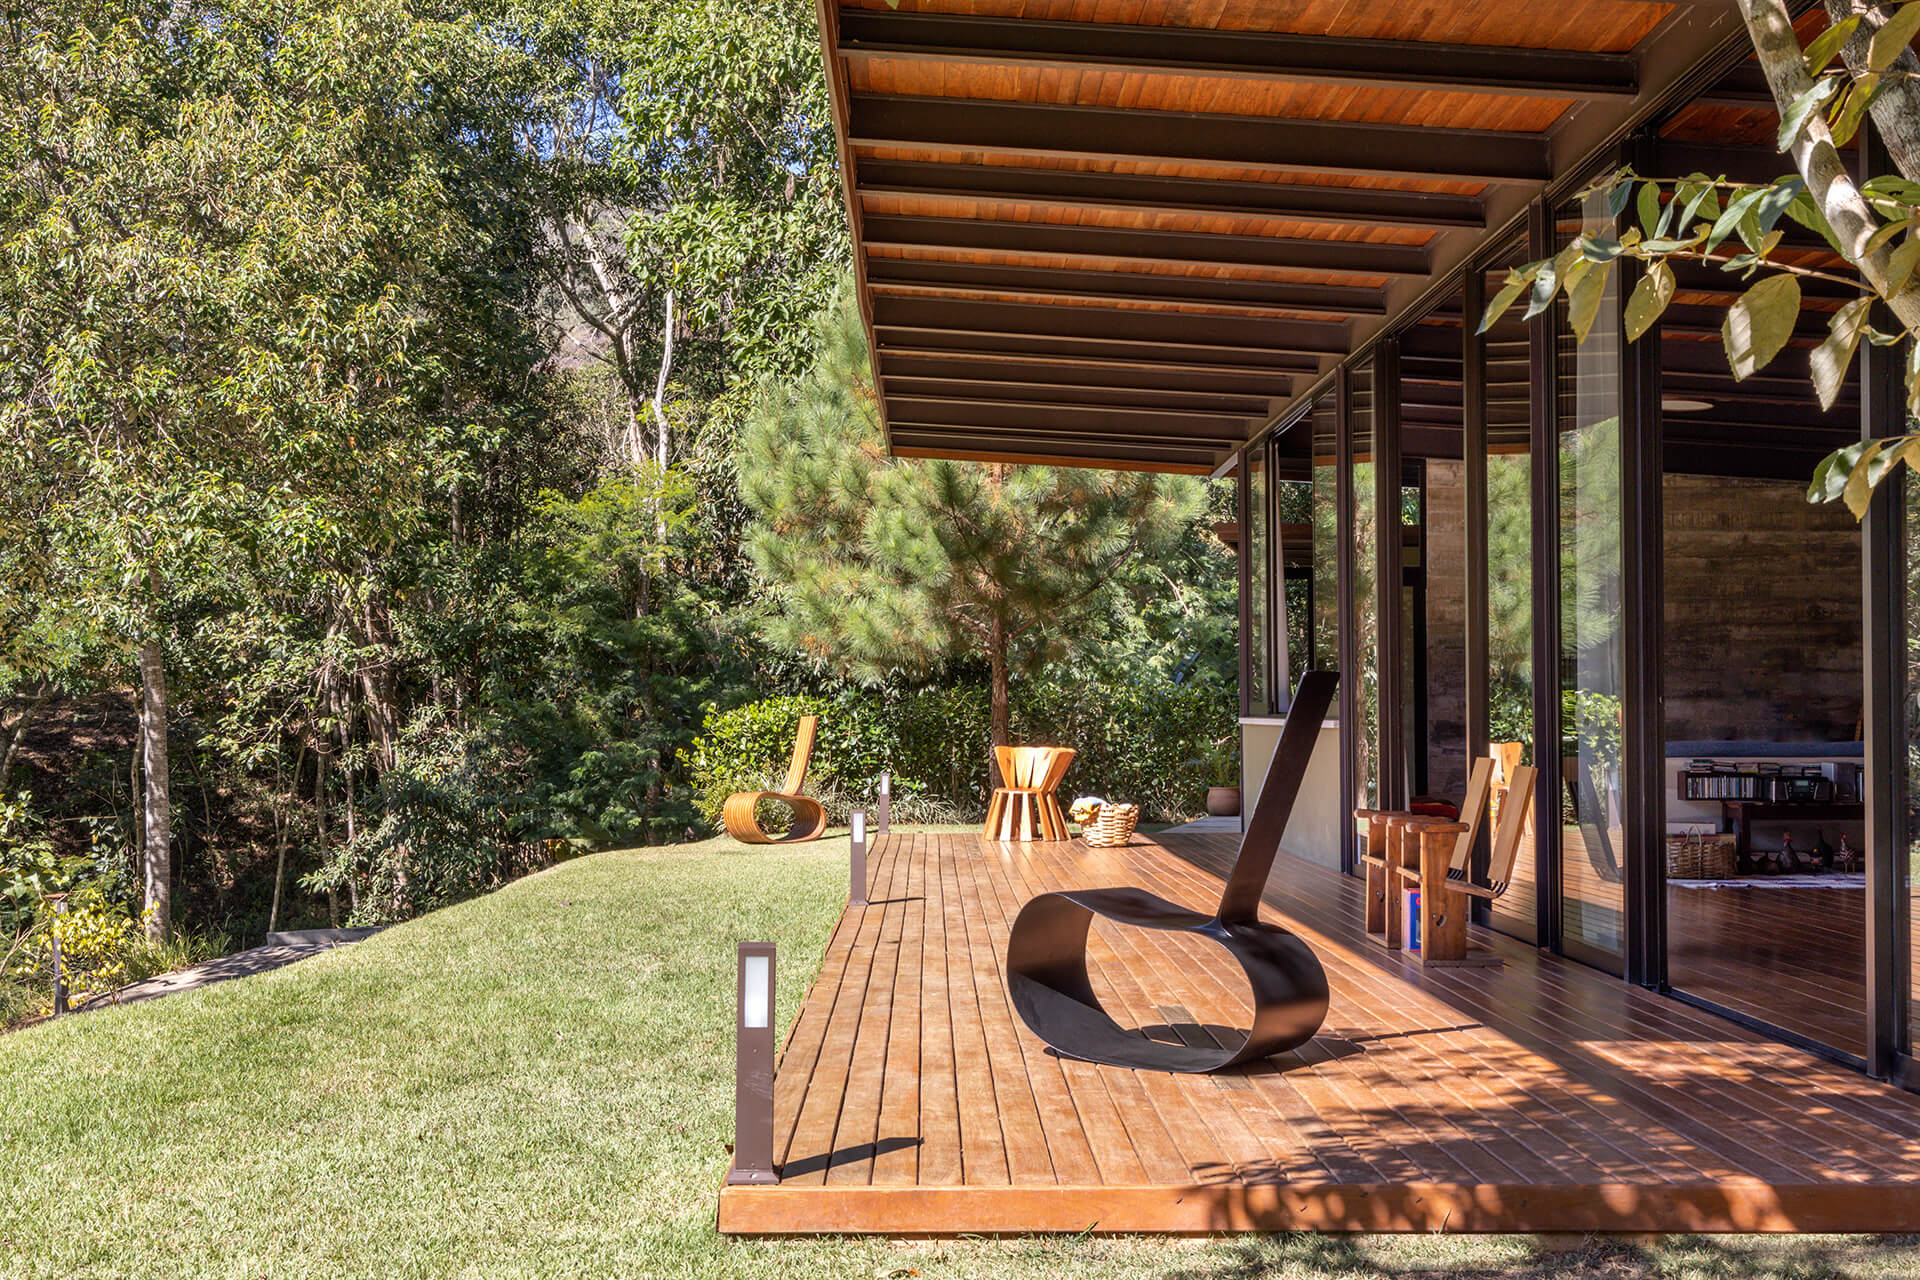 House in Vale das Videiras is embraced by a front verandah that looks out to the landscape | House in Vale das Videiras by Rodrigo Simão Arquitetura | STIRworld